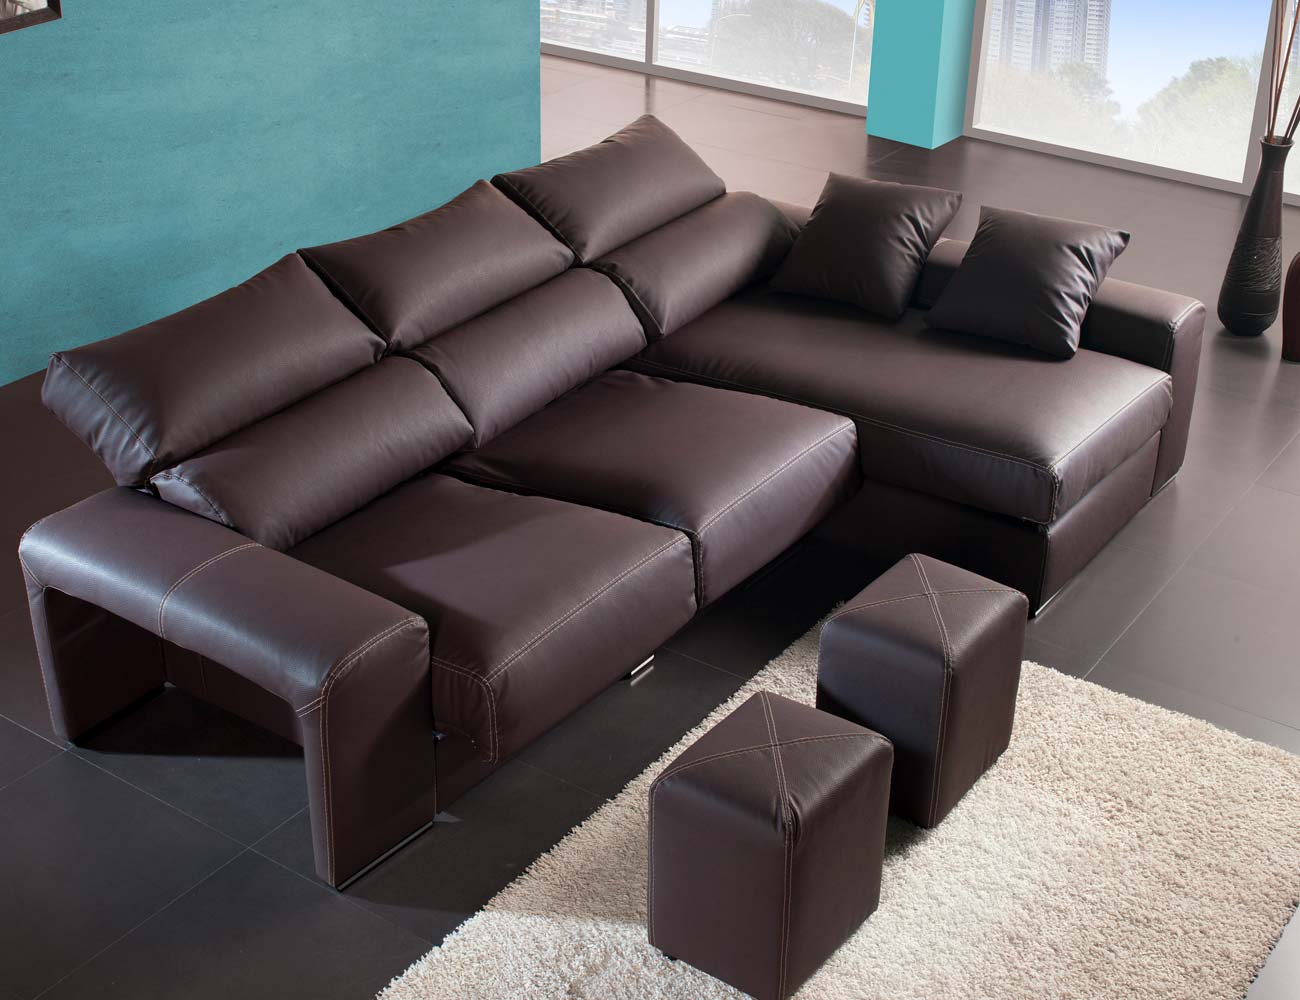 Sofa chaiselongue moderno polipiel chocolate poufs taburetes64